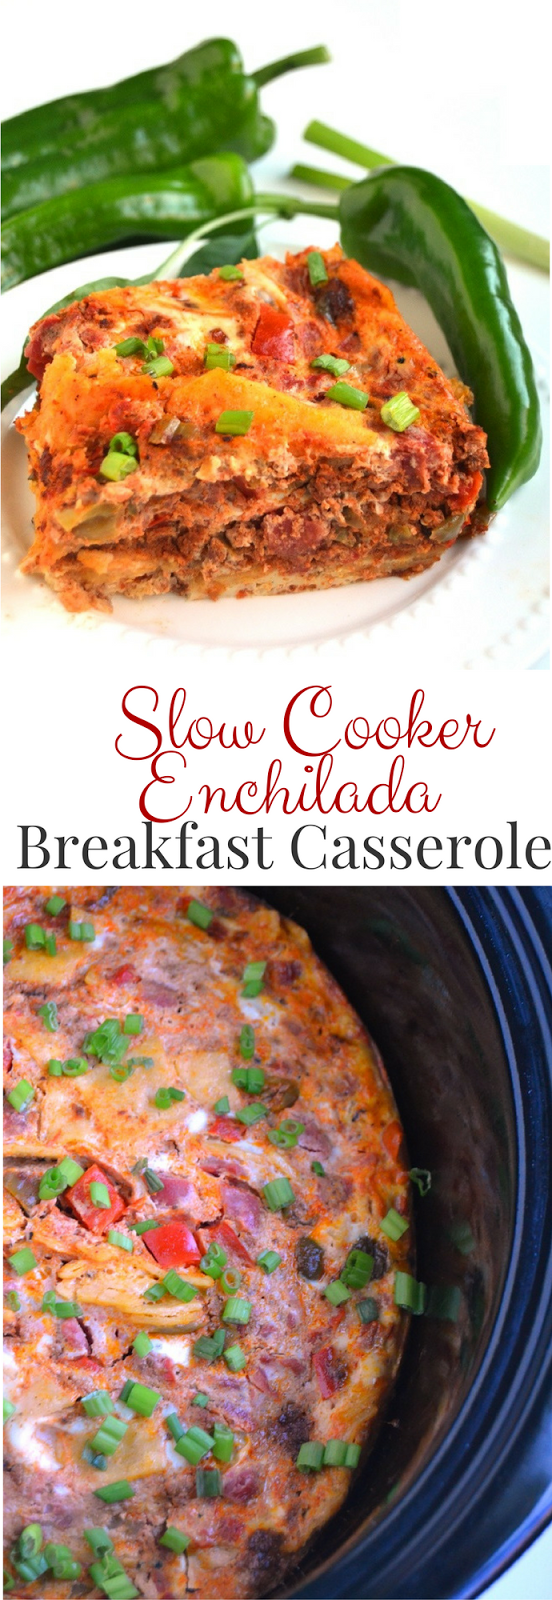 Slow Cooker Enchilada Breakfast Casserole is a delicious egg bake made in the crockpot with chorizo, sauteed bell peppers, tomatoes and corn tortillas! www.nutritionistreviews.com